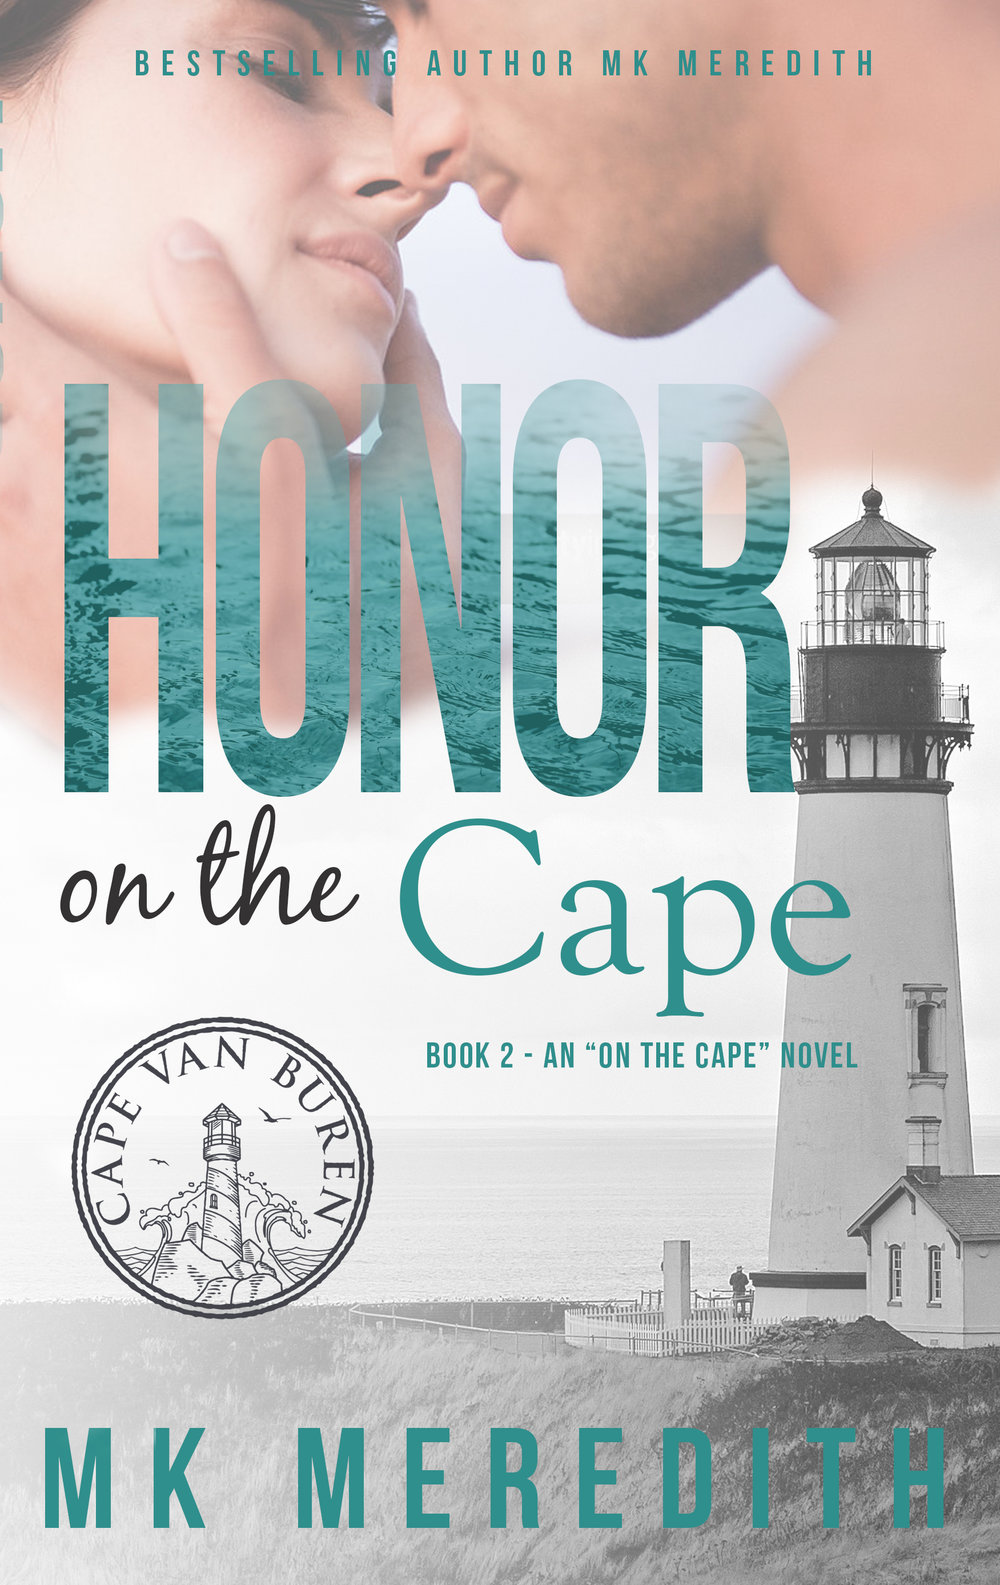 Honor on the Cape - Get it here on Amazon! On the rocky, atmospheric coast of Cape Van Buren, Maine...After a decade of making it on her own, Irish immigrant, Blayne MacCaffrey is determined to return to her homeland and make peace with her father, who hasn't forgiven her for deserting the family—for what she believed was true love. Her ticket home is in the bag with the launch of the Archer Conservation Park of Cape Van Buren. Only she must partner with the devastatingly sexy heartbreaker who first awakened her desires and unequivocally destroyed her dreams years ago.Believing that family duty comes before everything else, James Astor made the biggest mistake of his life and had abandoned the only woman he'd ever loved. But after a decade of lucrative business transactions and empty relationships, he returns to the Cape, determined to show Blayne how perfect they are together and why he's worth falling in love with all over again.A second chance at first love is a dream neither can bear to lose again. With a past marred by painful mistakes, can they find the courage to forgive and fight for love? Or are these two souls destined to repeat history?